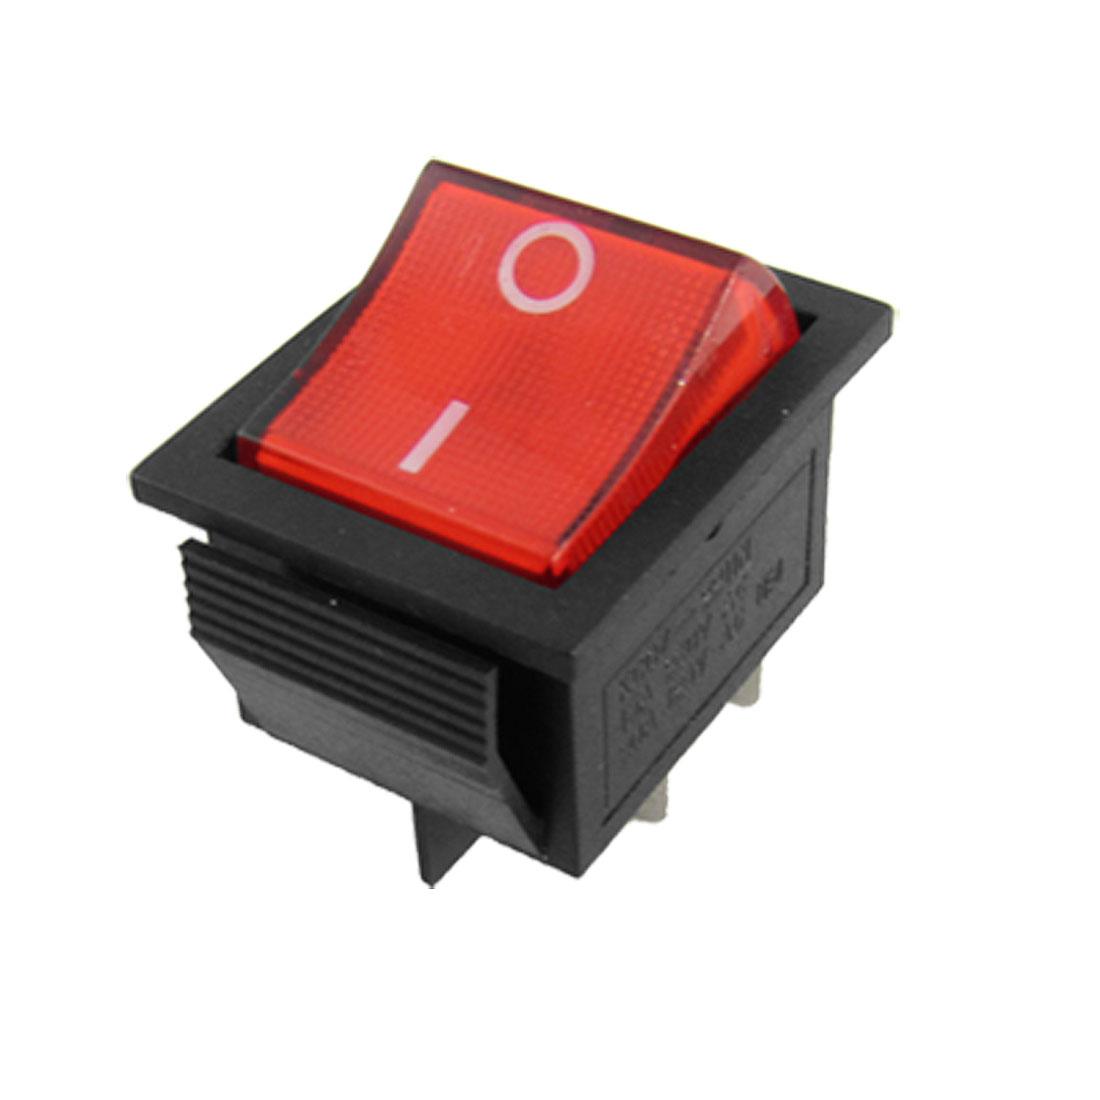 Red Light 4 Pin DPST ON/OFF Snap in Rocker Switch 15A/250V 20A/125V AC 28x22mm